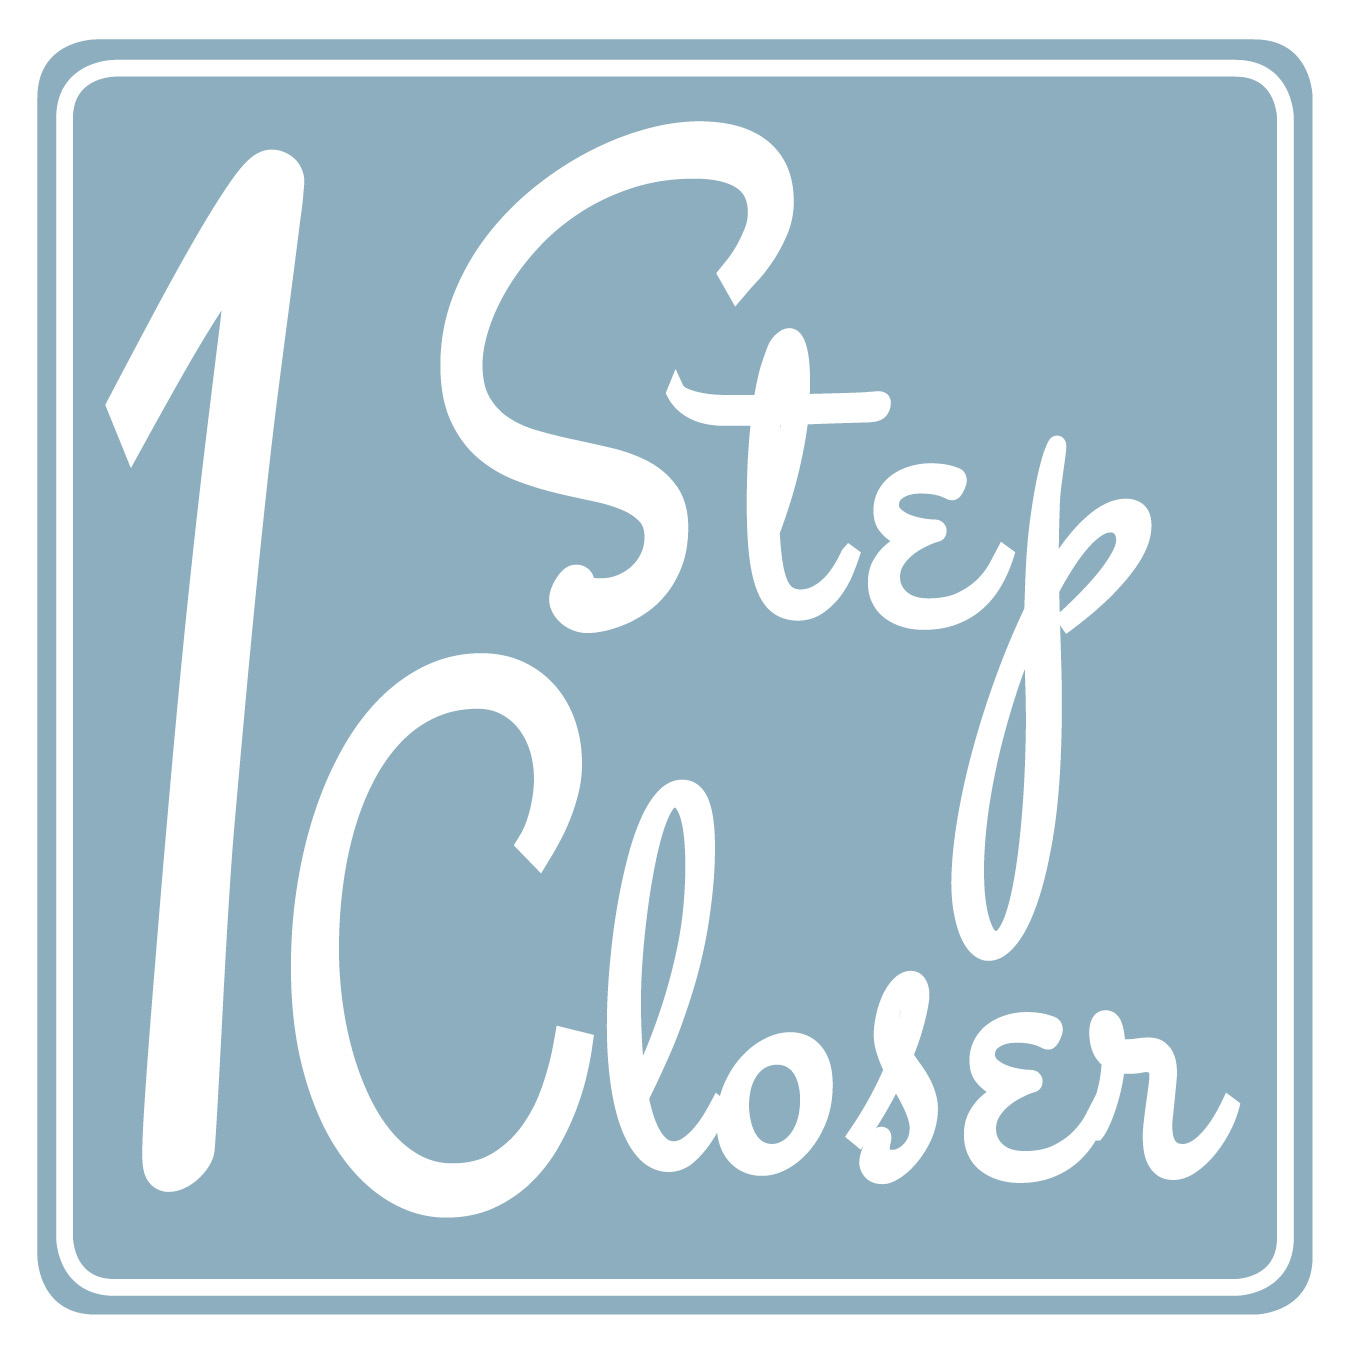 President of 1 Step Closer Ministries